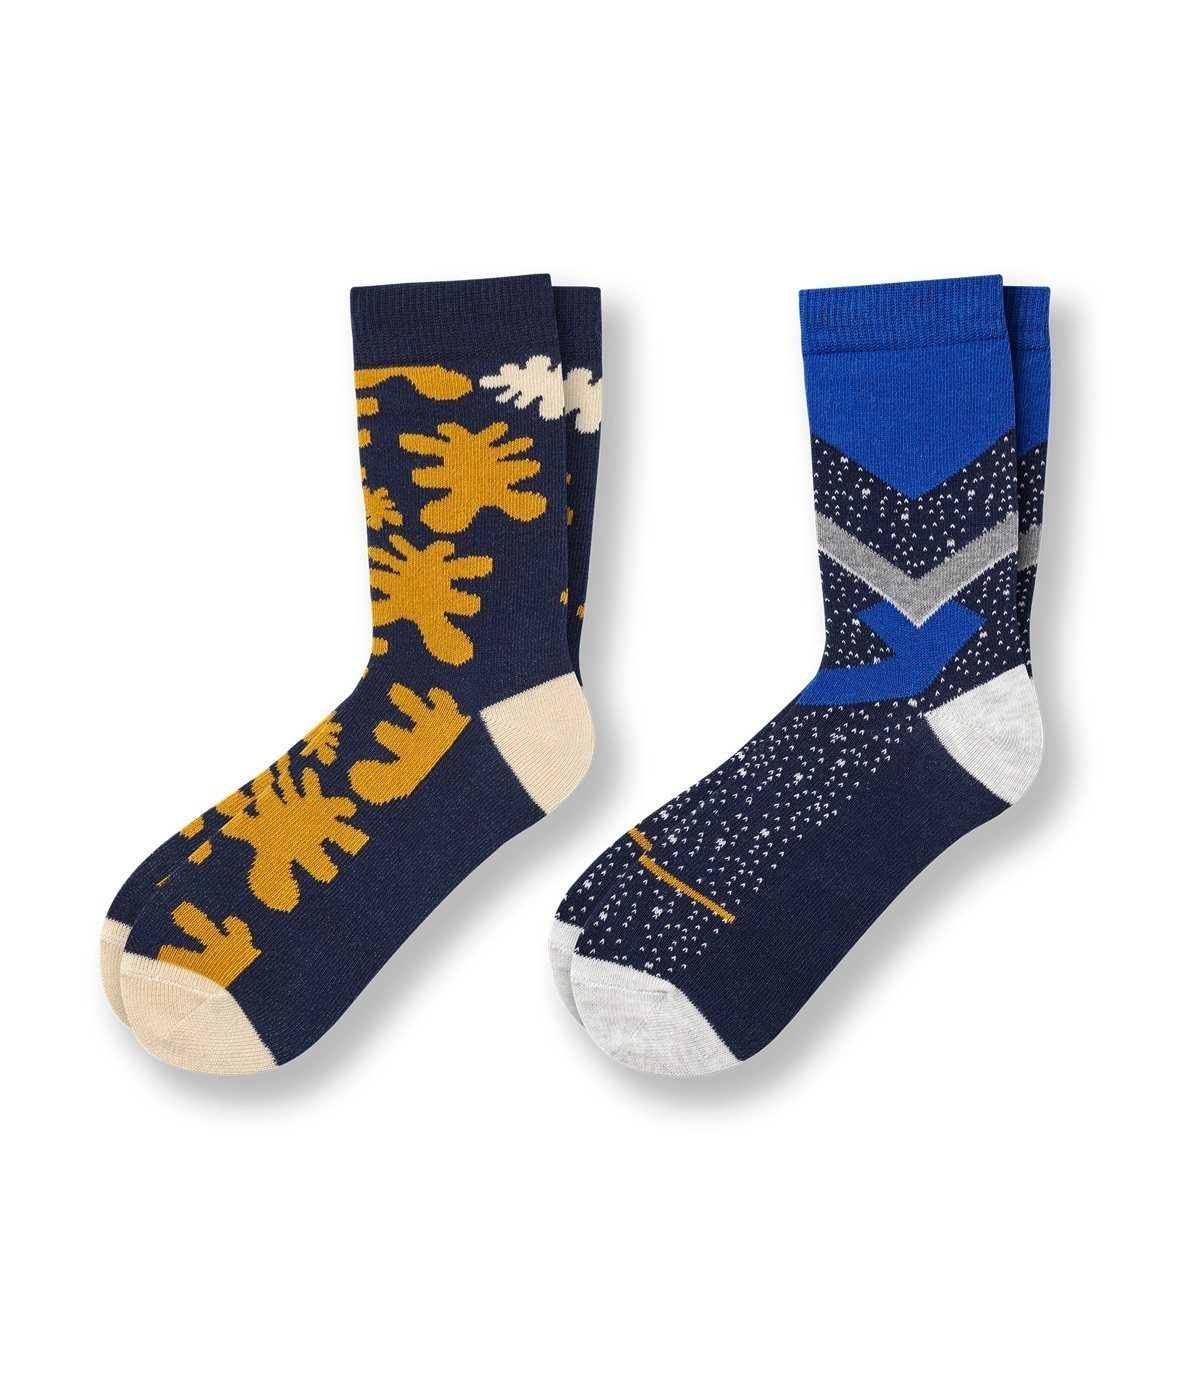 When I Was Your Age Kid's Socks 2-pack